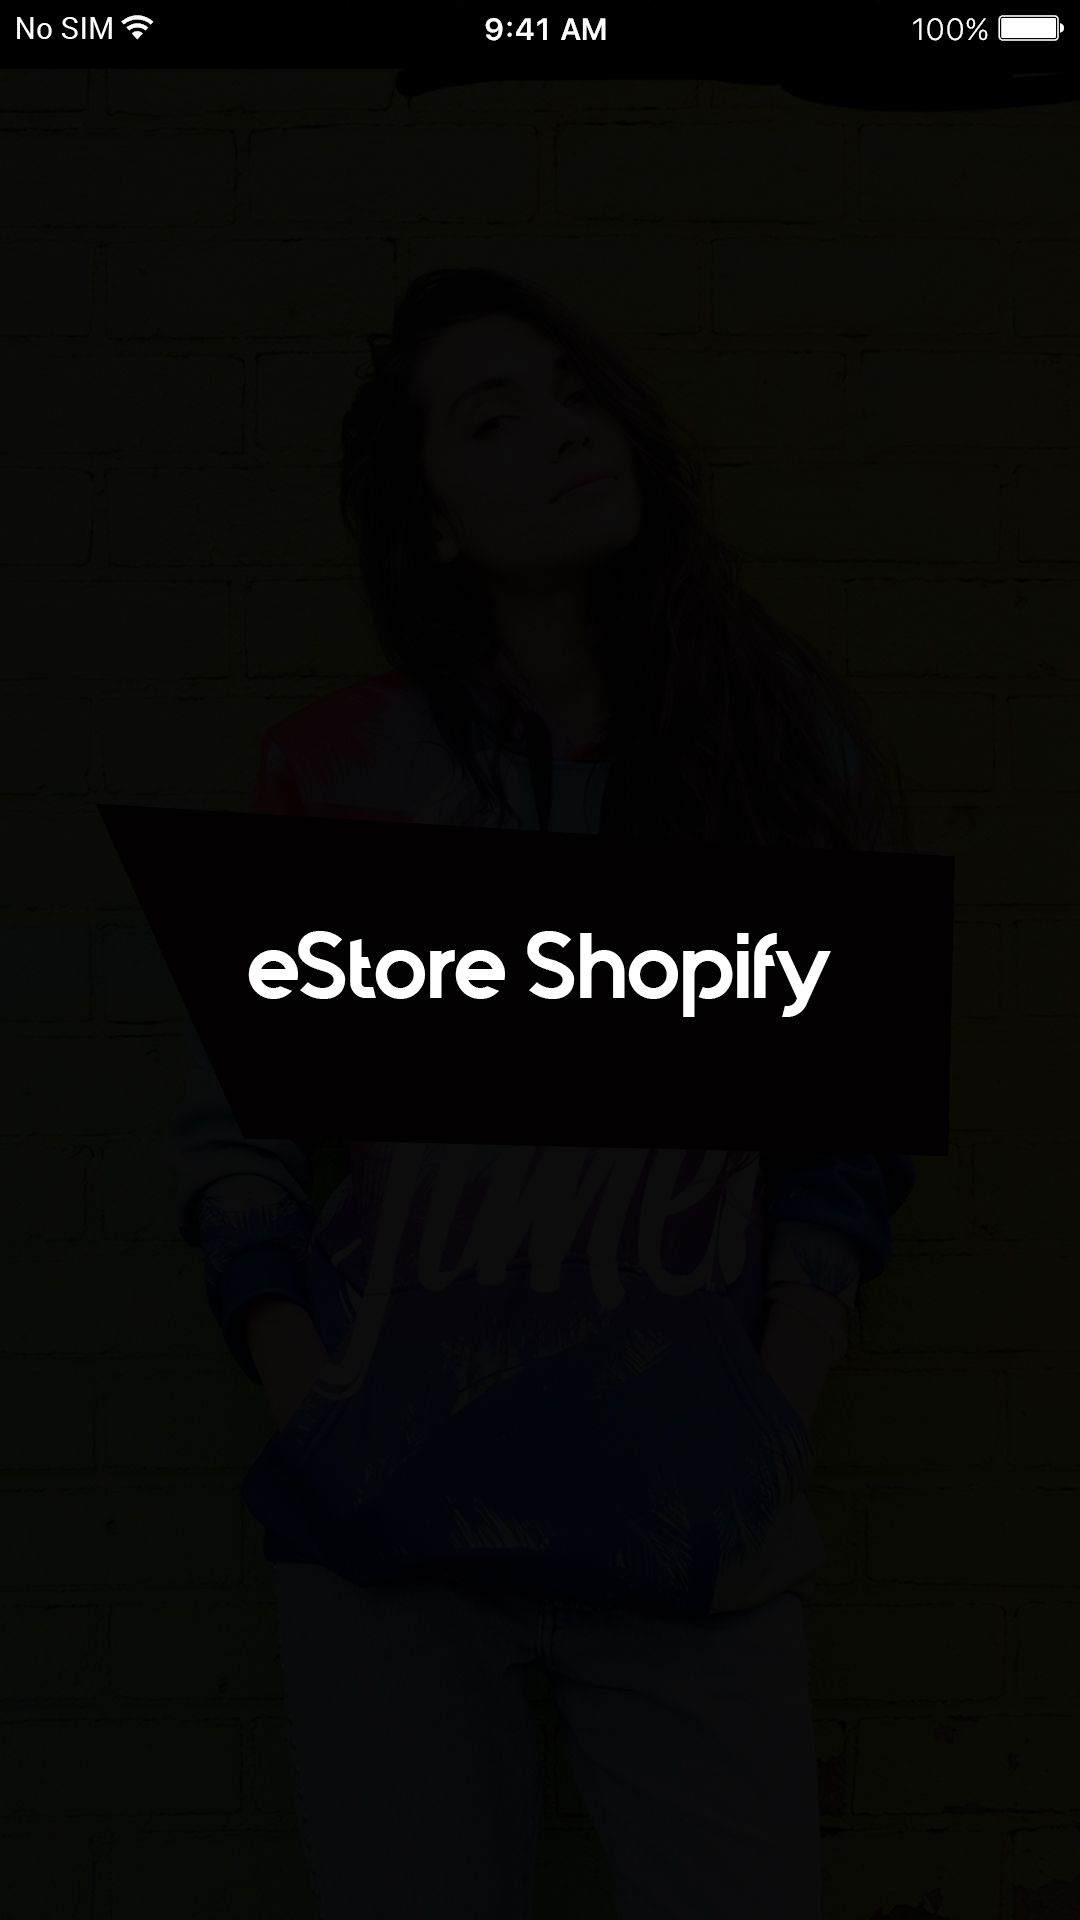 eStore Shopify - iOS App Source Code Screenshot 1